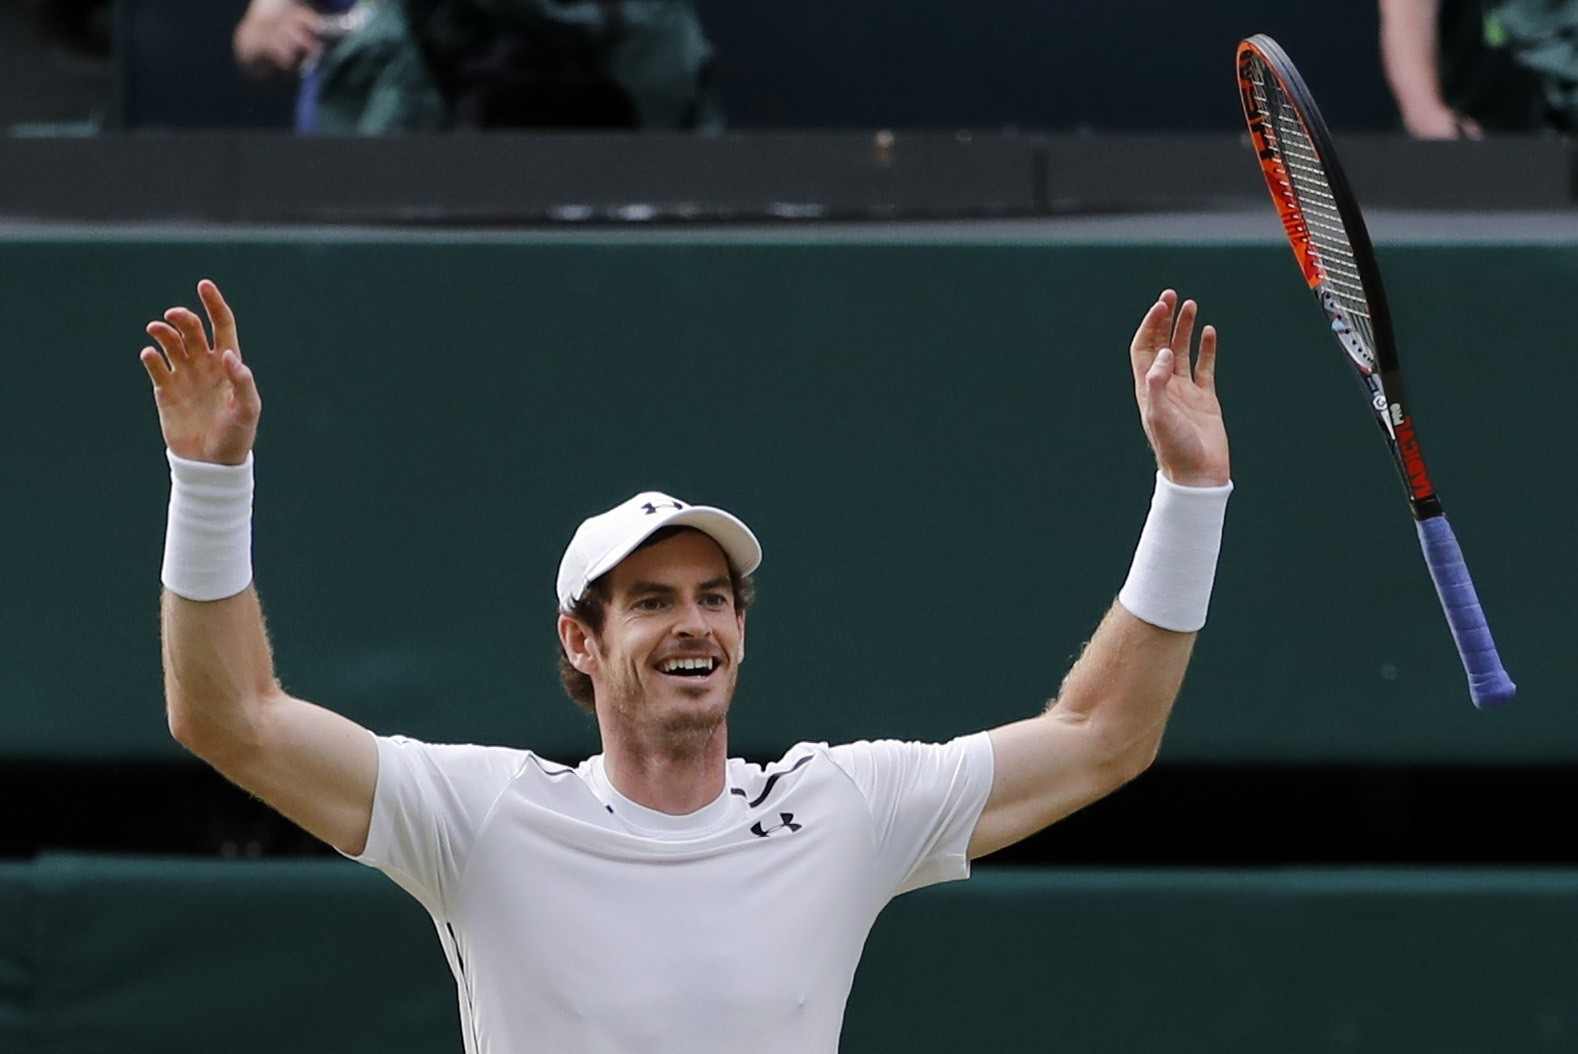 Andy Murray of Britain celebrates after beating Milos Raonic of Canada in the men's singles final on the fourteenth day of the Wimbledon Tennis Championships in London, Sunday, July 10, 2016. (AP Photo)